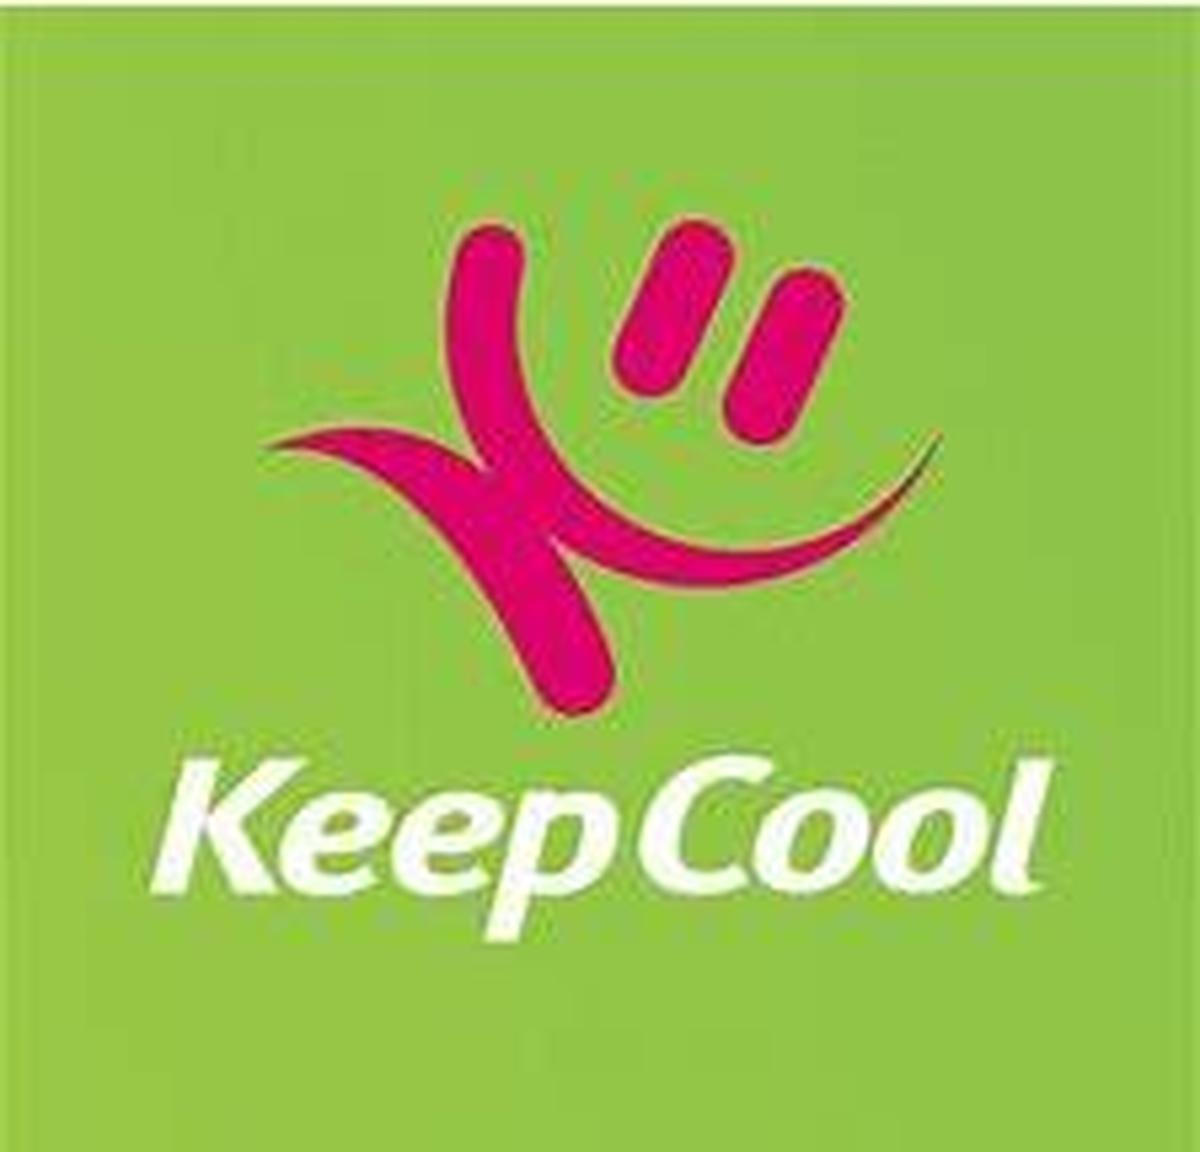 Keep Cool Salle De Sport Perigueux Club Football Us Marsaneix